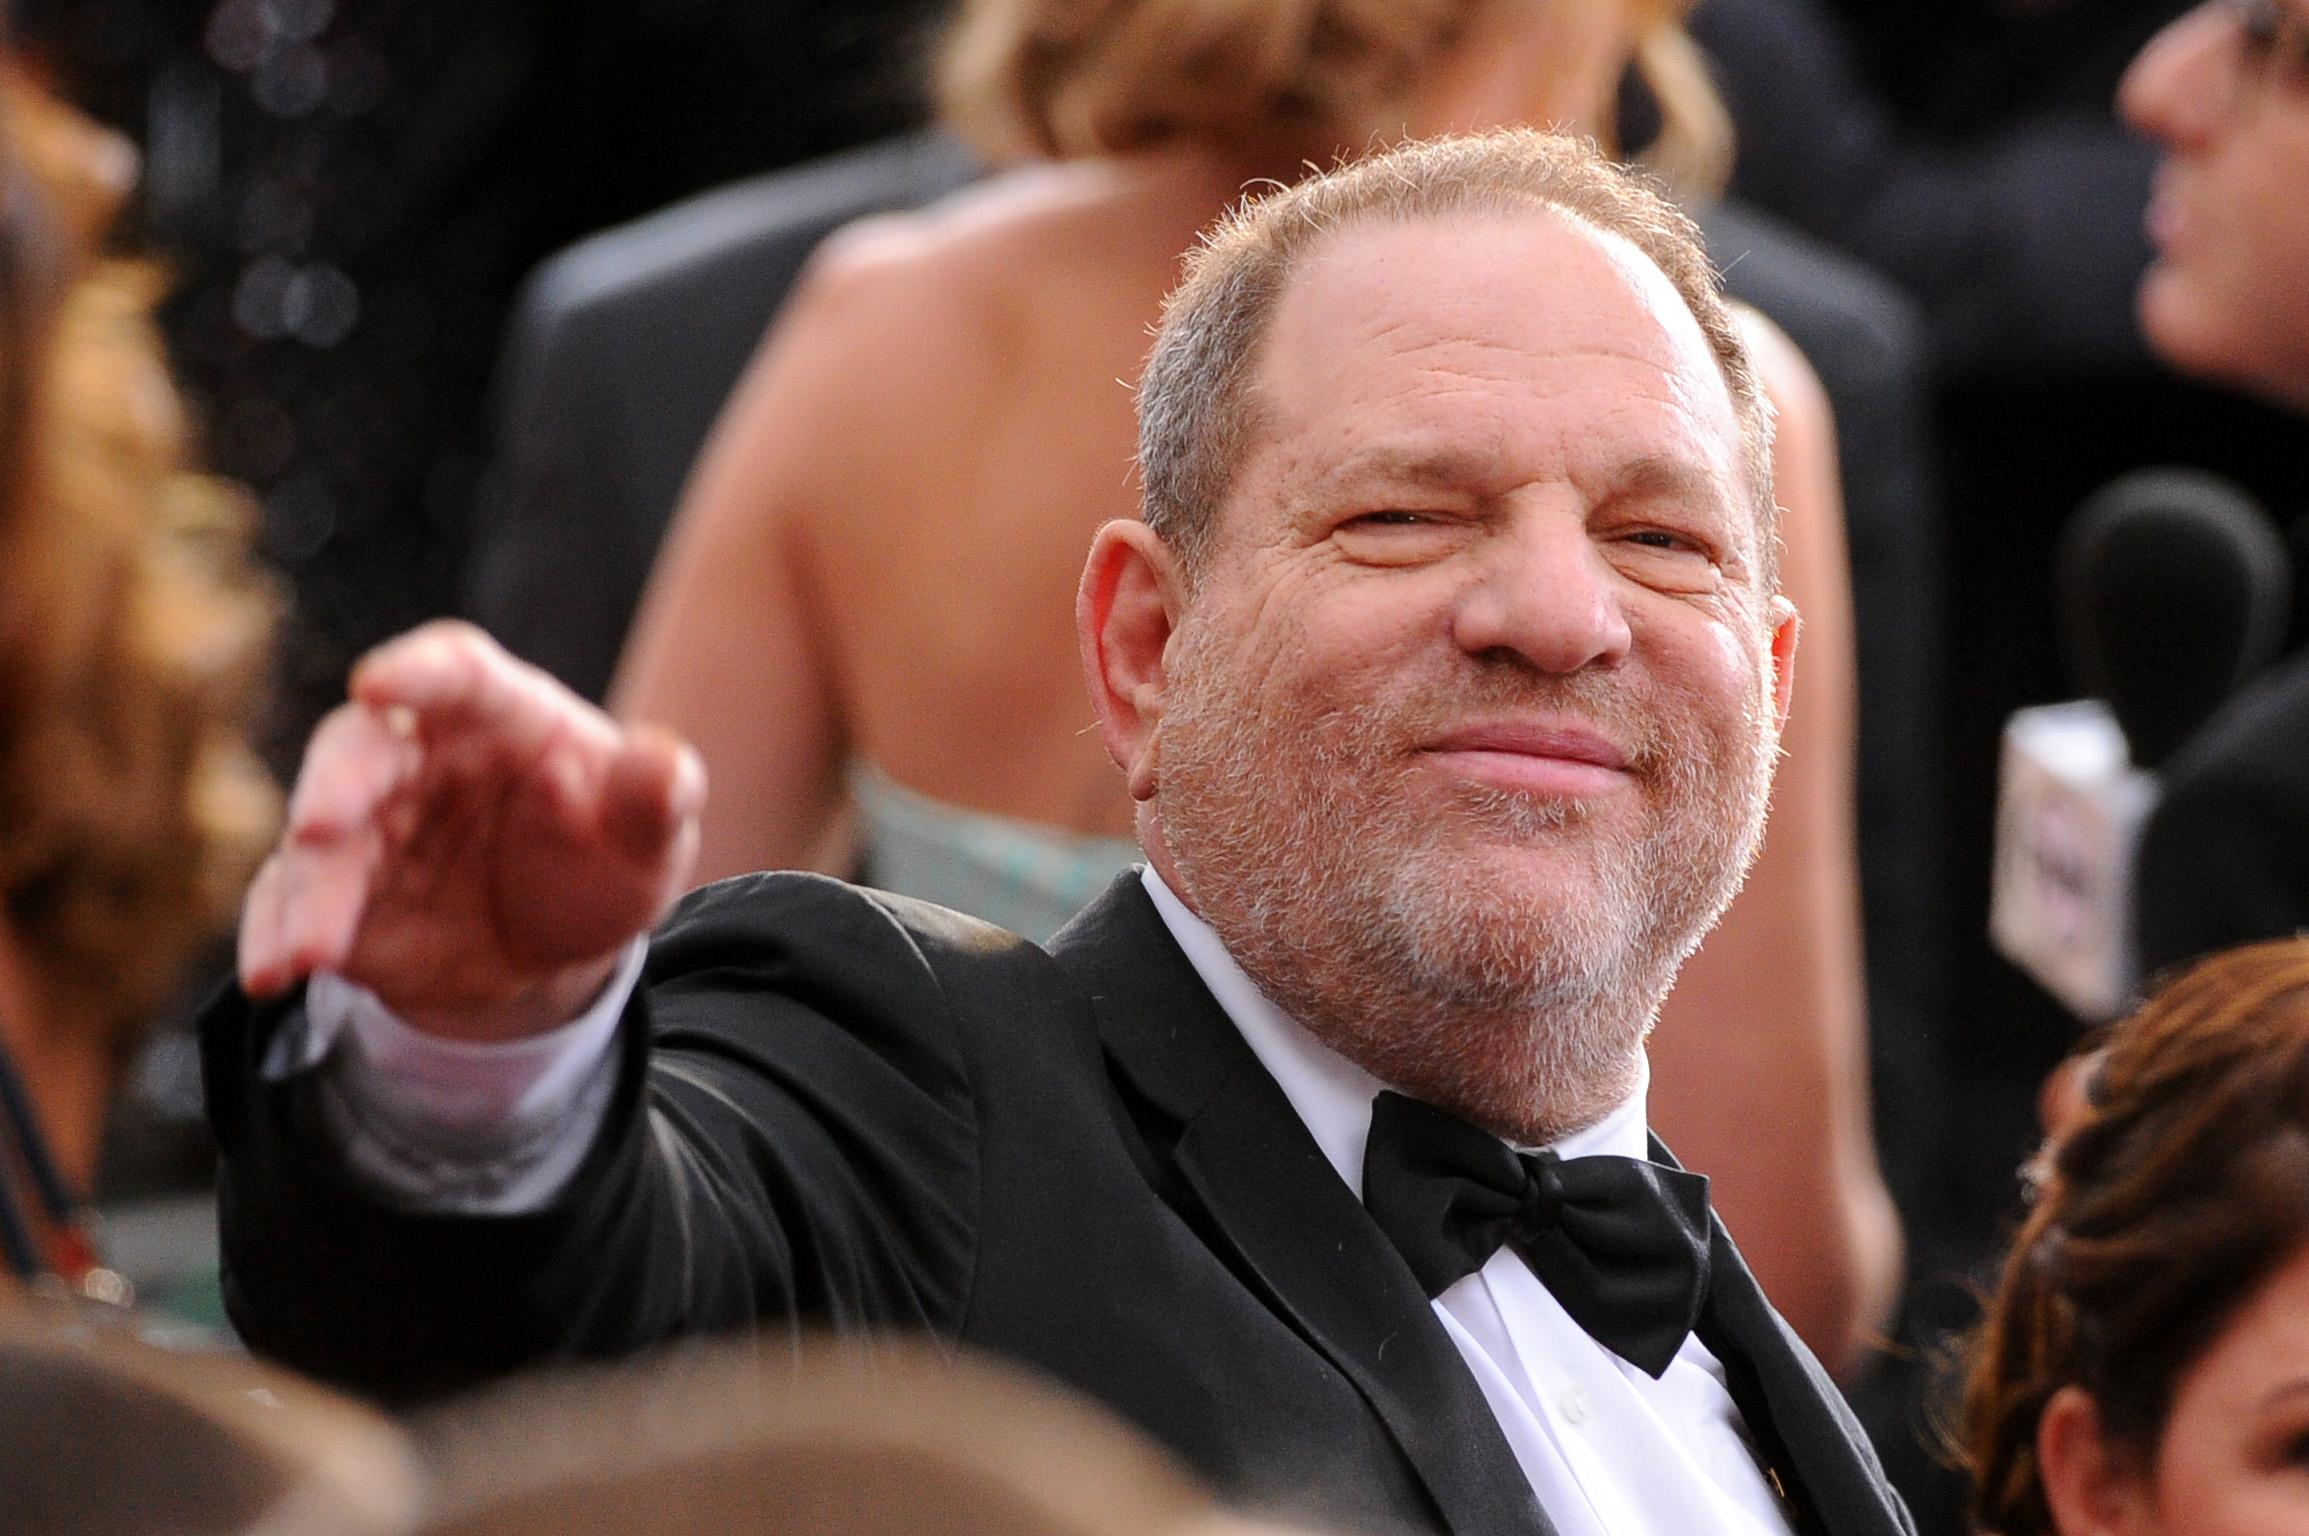 Hollywood Mogul Harvey Weinstein Faces Sex Harass Accusations Dating Back Decades